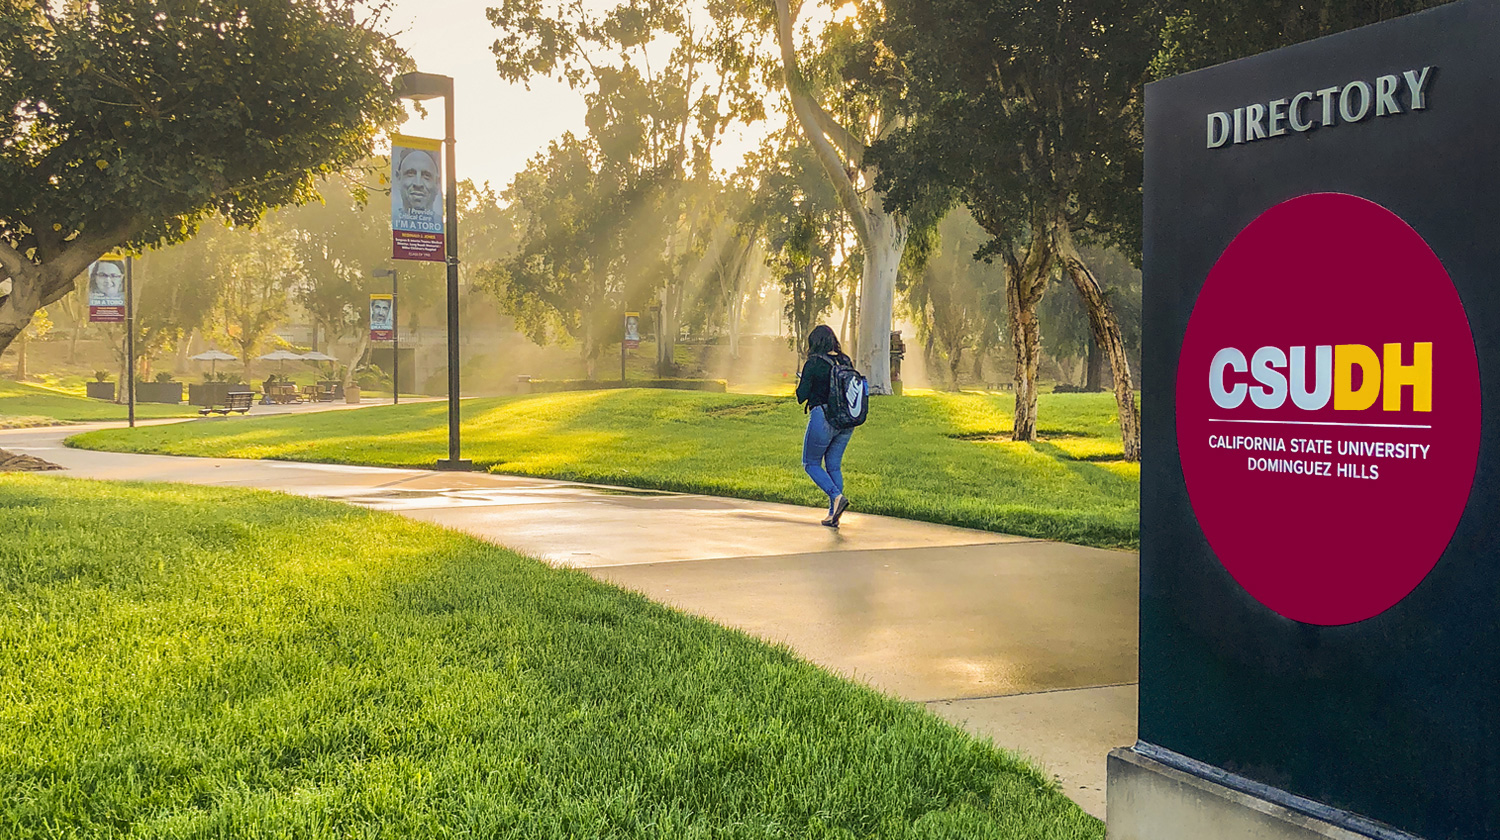 photo of campus directory signage with logo, student walking along pathway